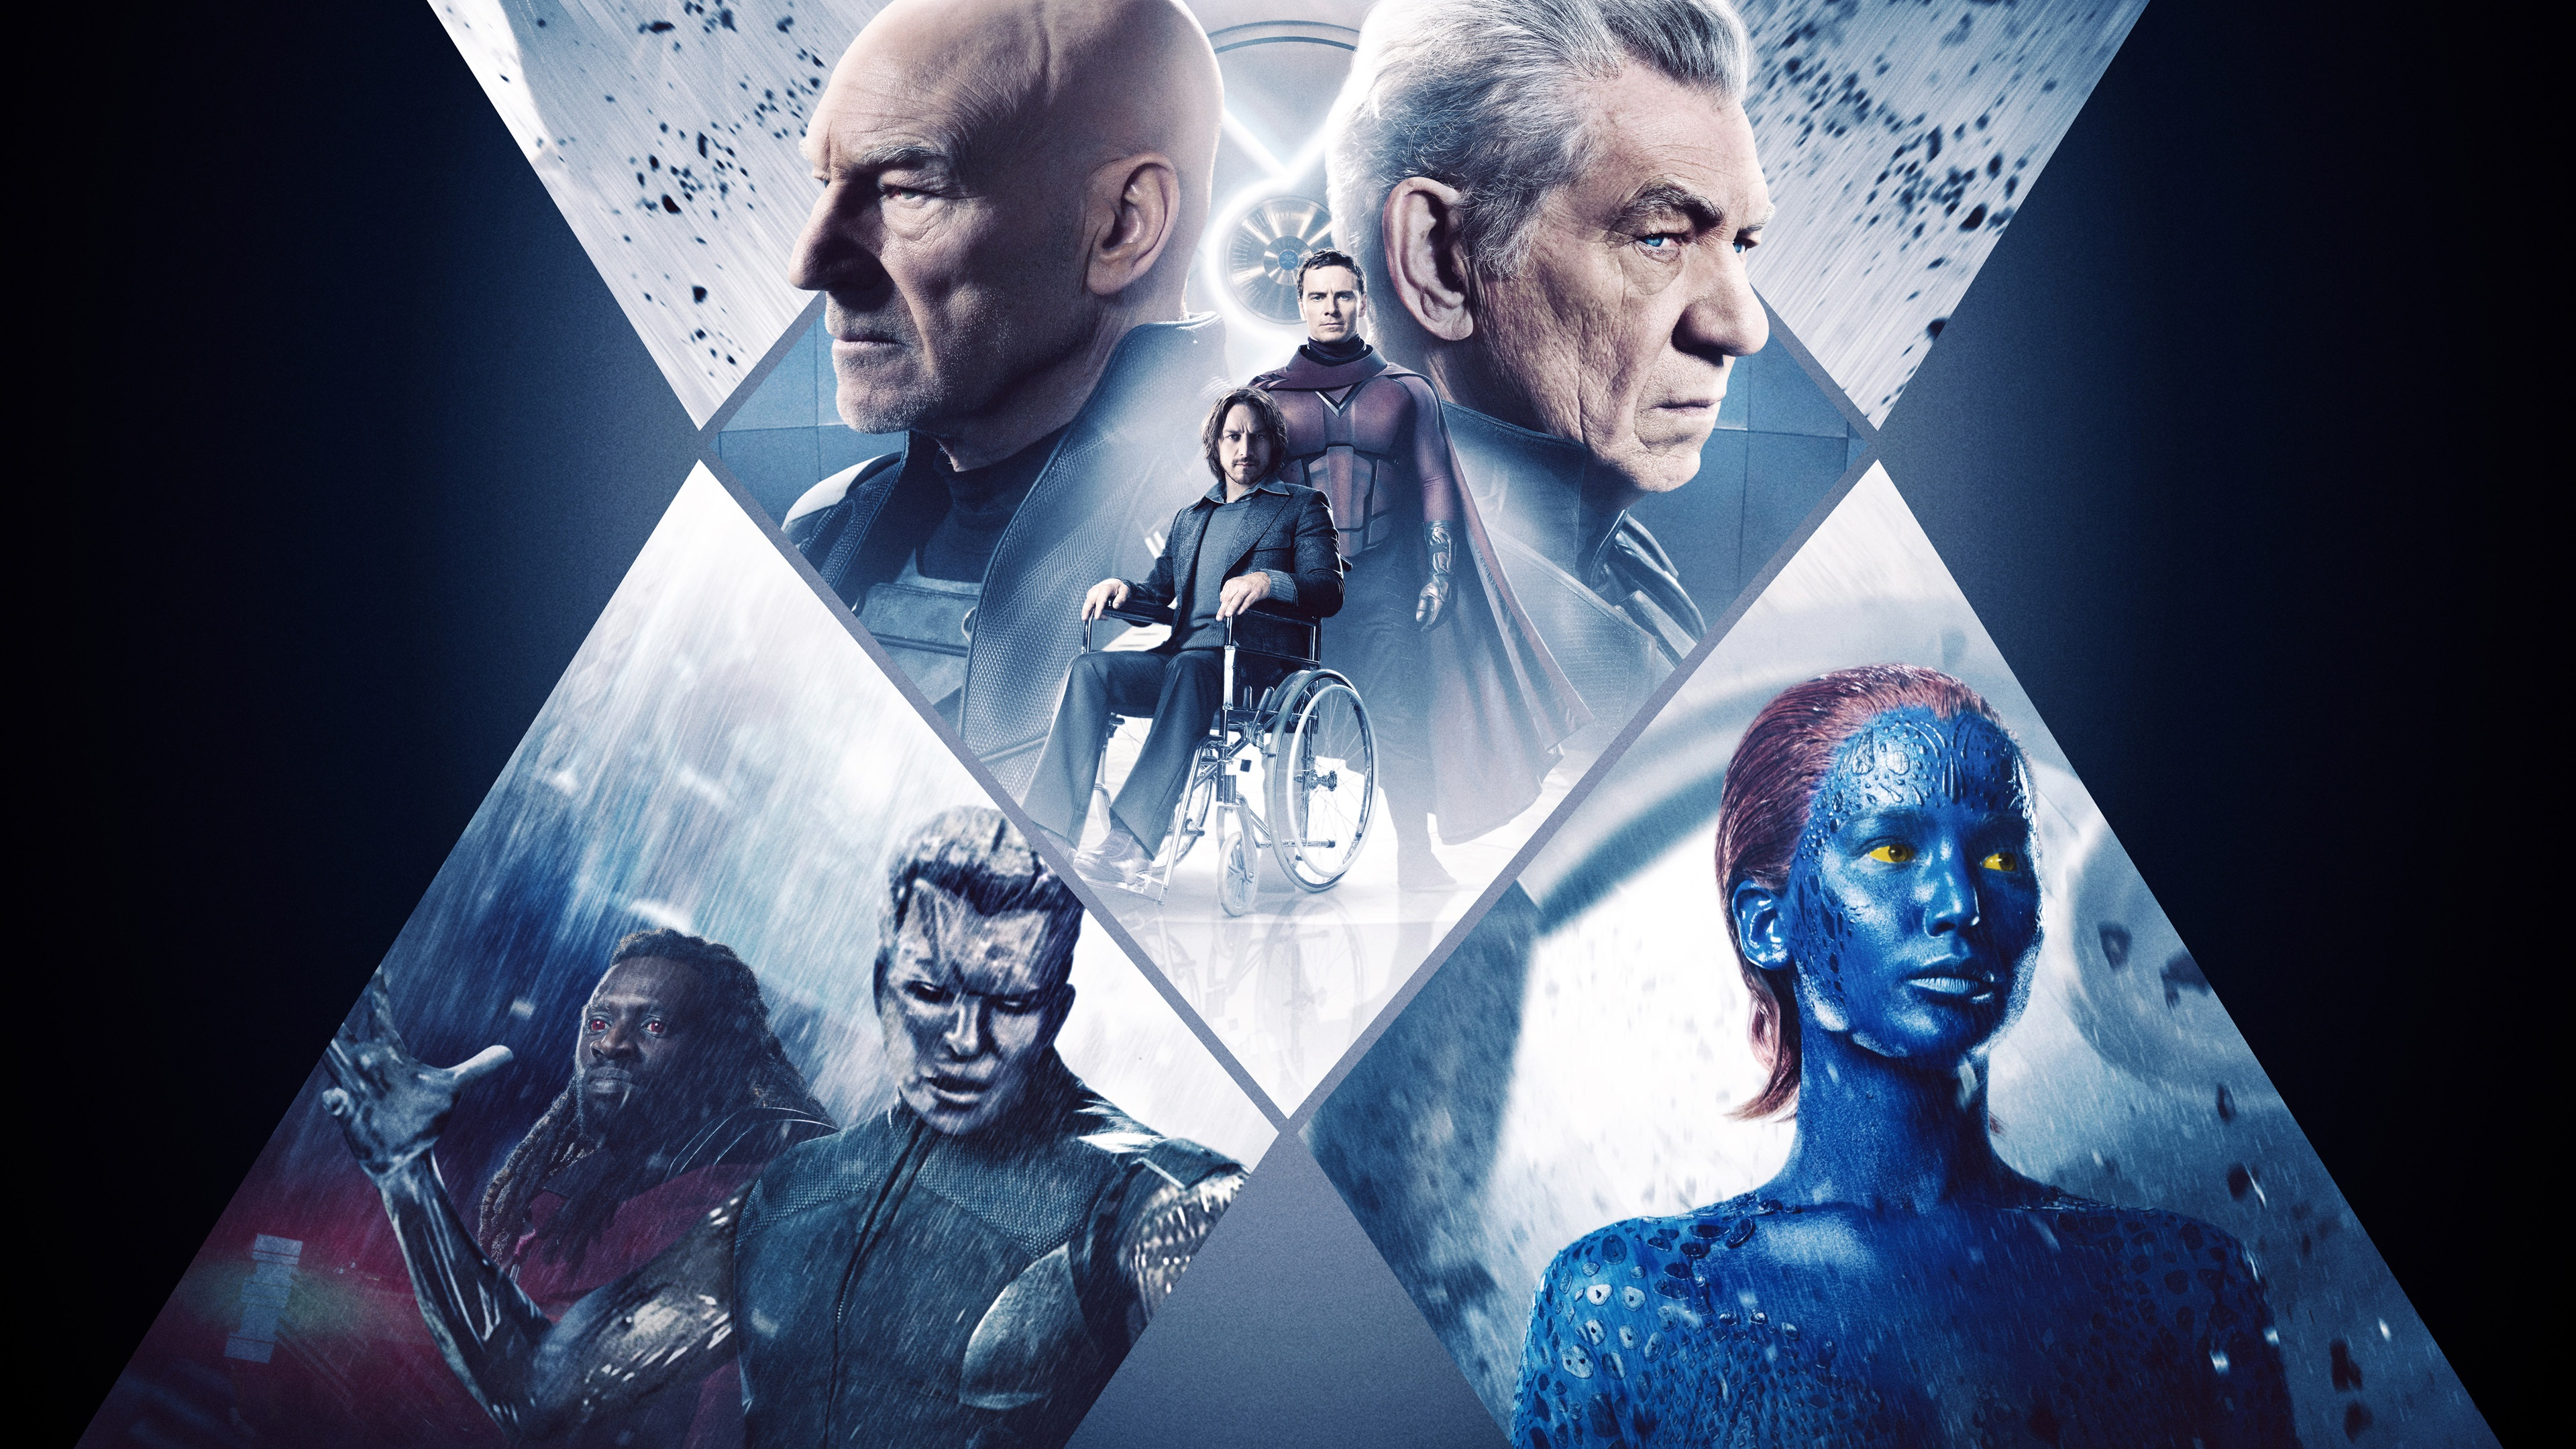 Wallpaper X Men Days Of Future Past Ultra Hd 3840x2160 Uhd 4k